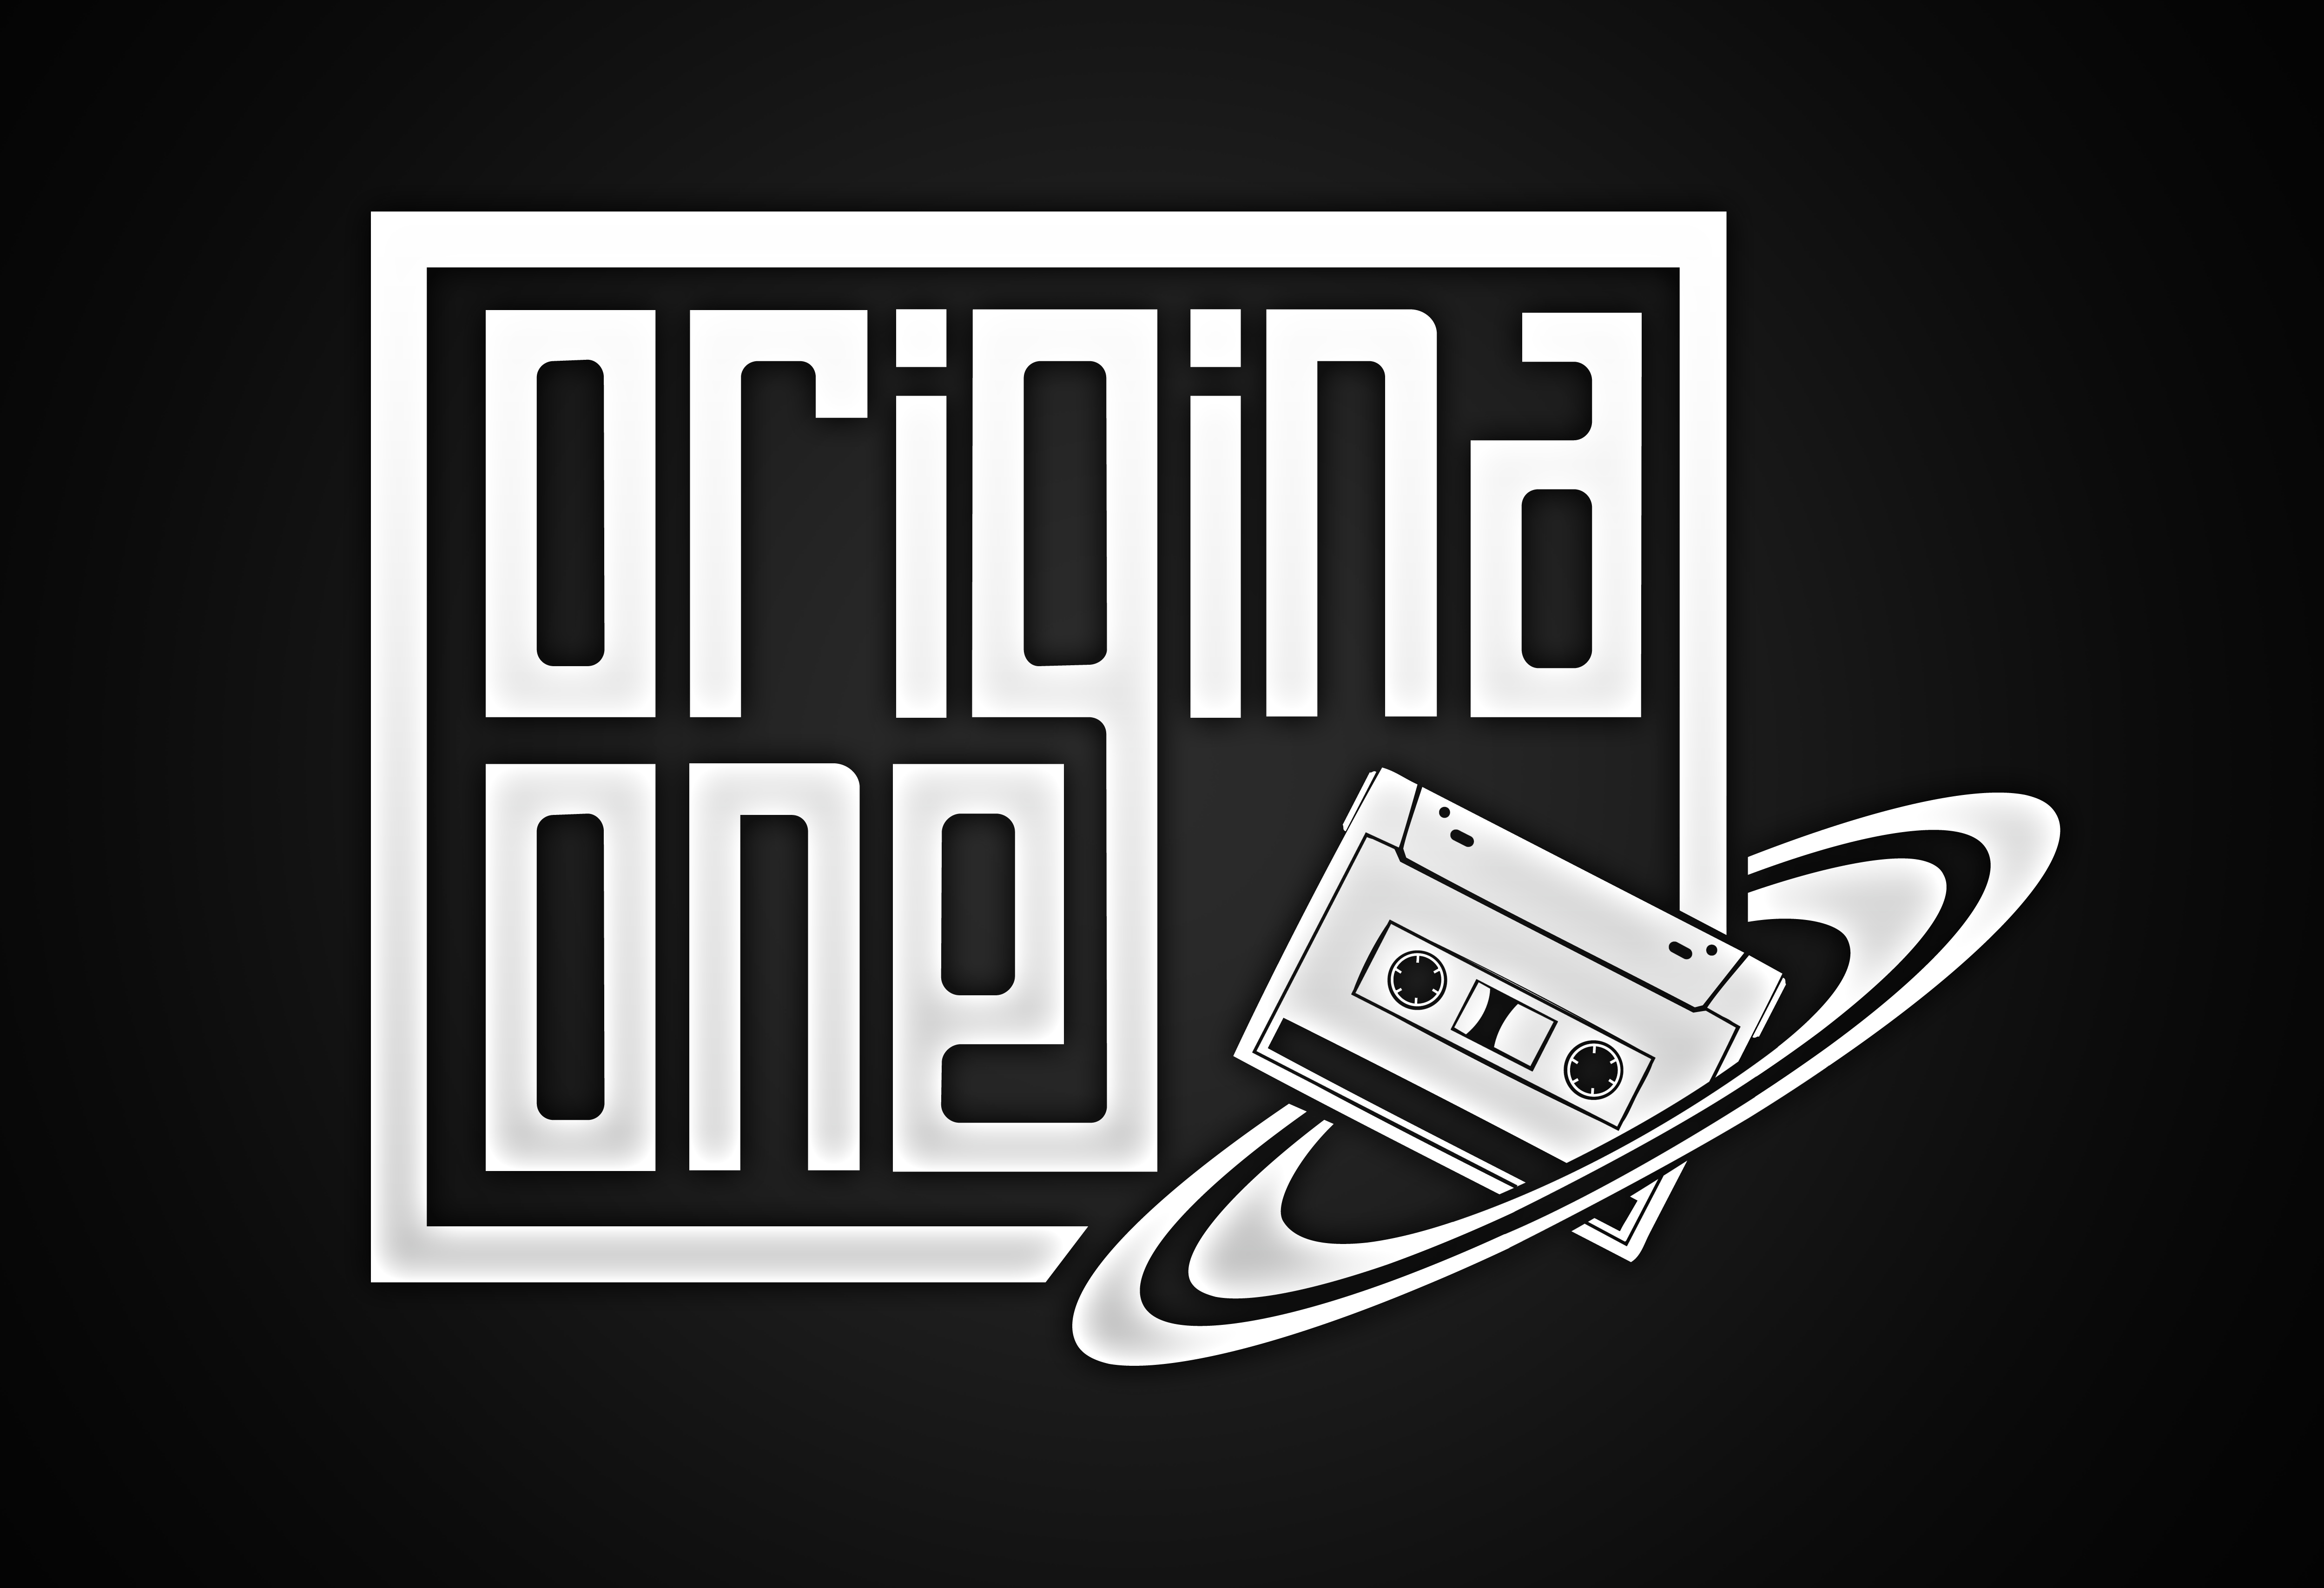 Original One Merch Store